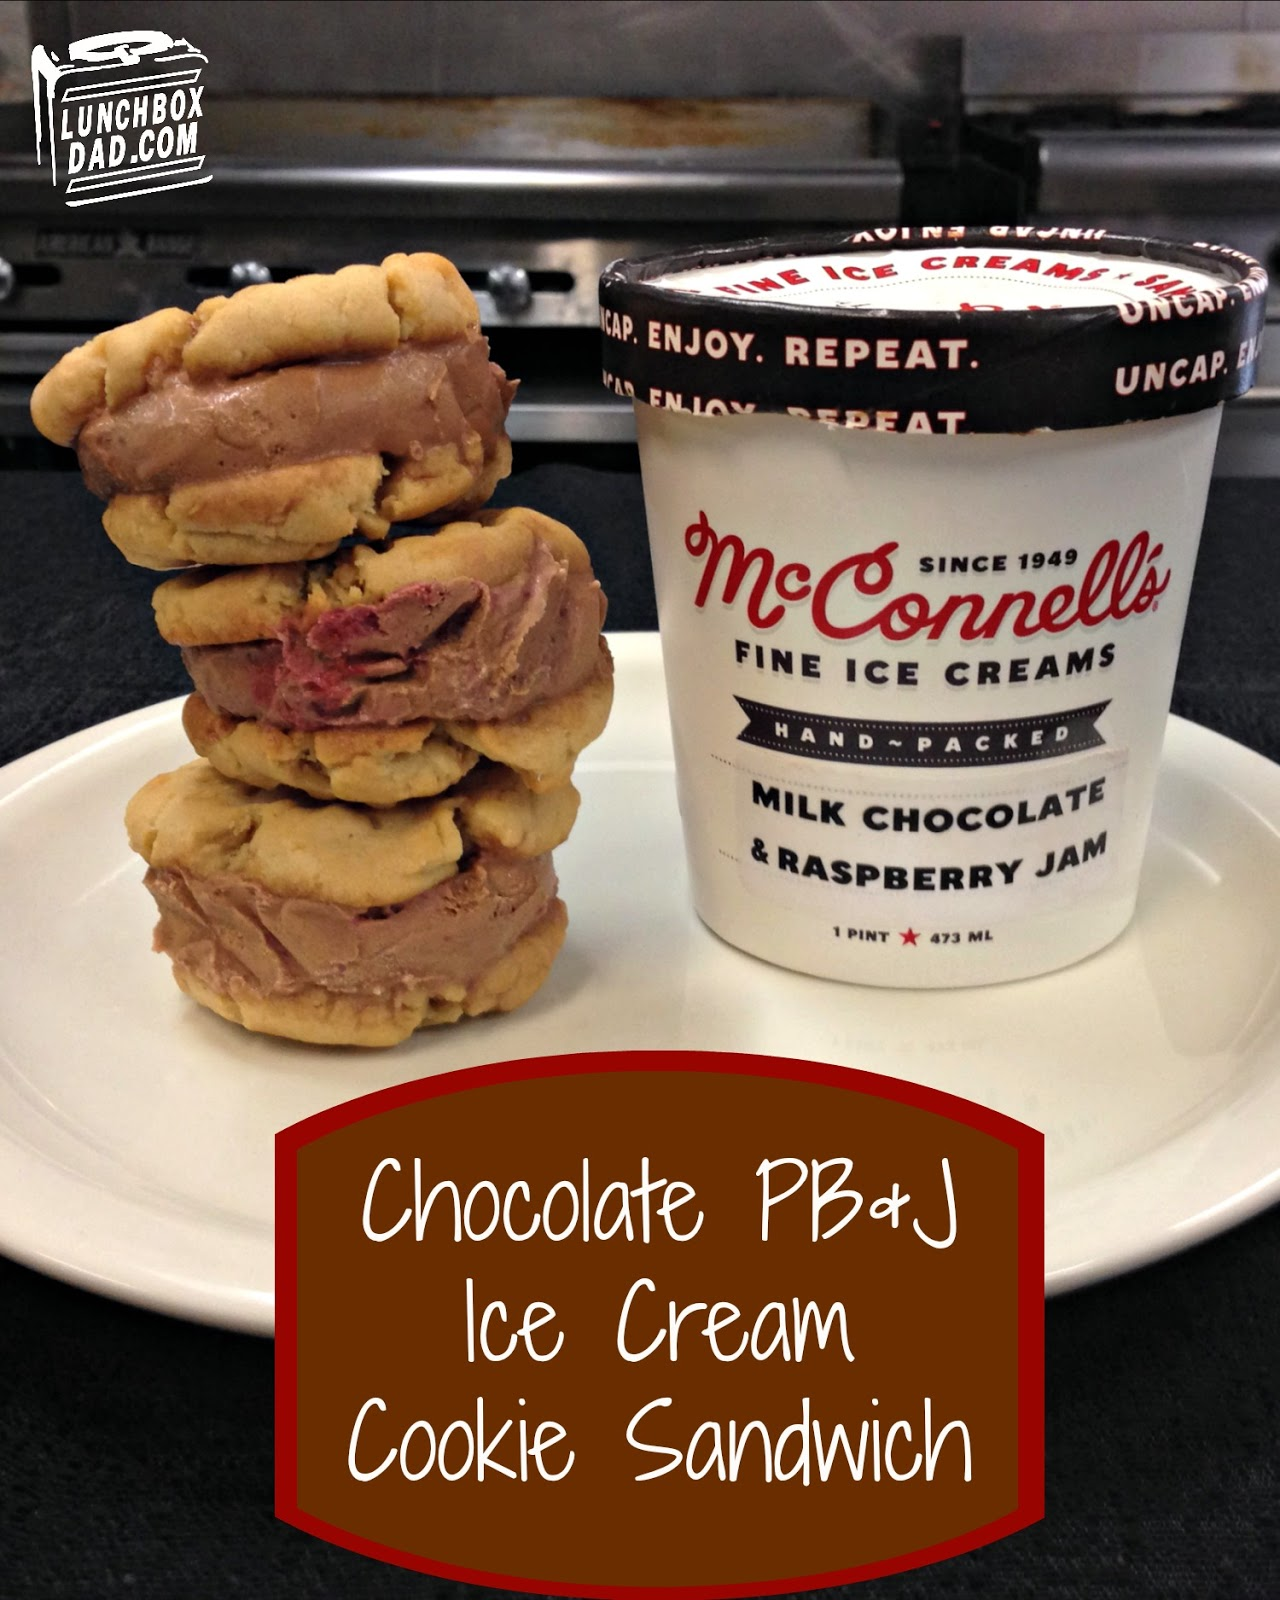 McConnell's Chocolate PB&J Ice Cream Cookie Sandwich